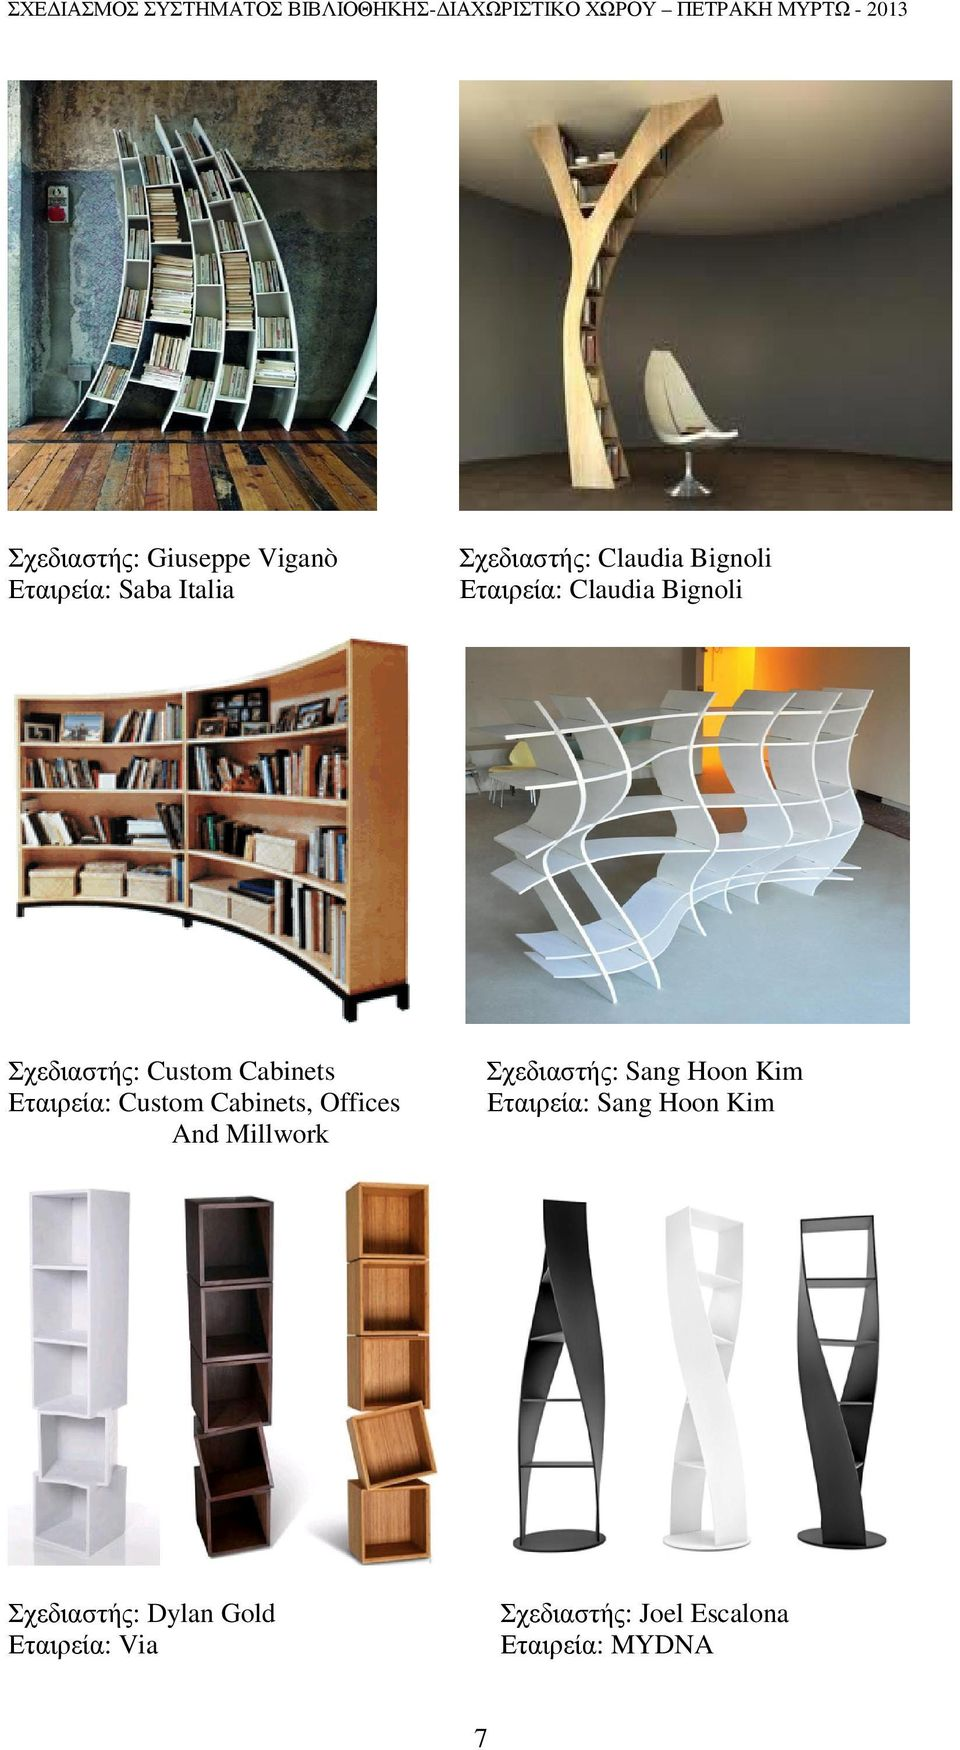 Cabinets, Offices And Millwork Σχεδιαστής: Sang Hoon Kim Εταιρεία: Sang Hoon